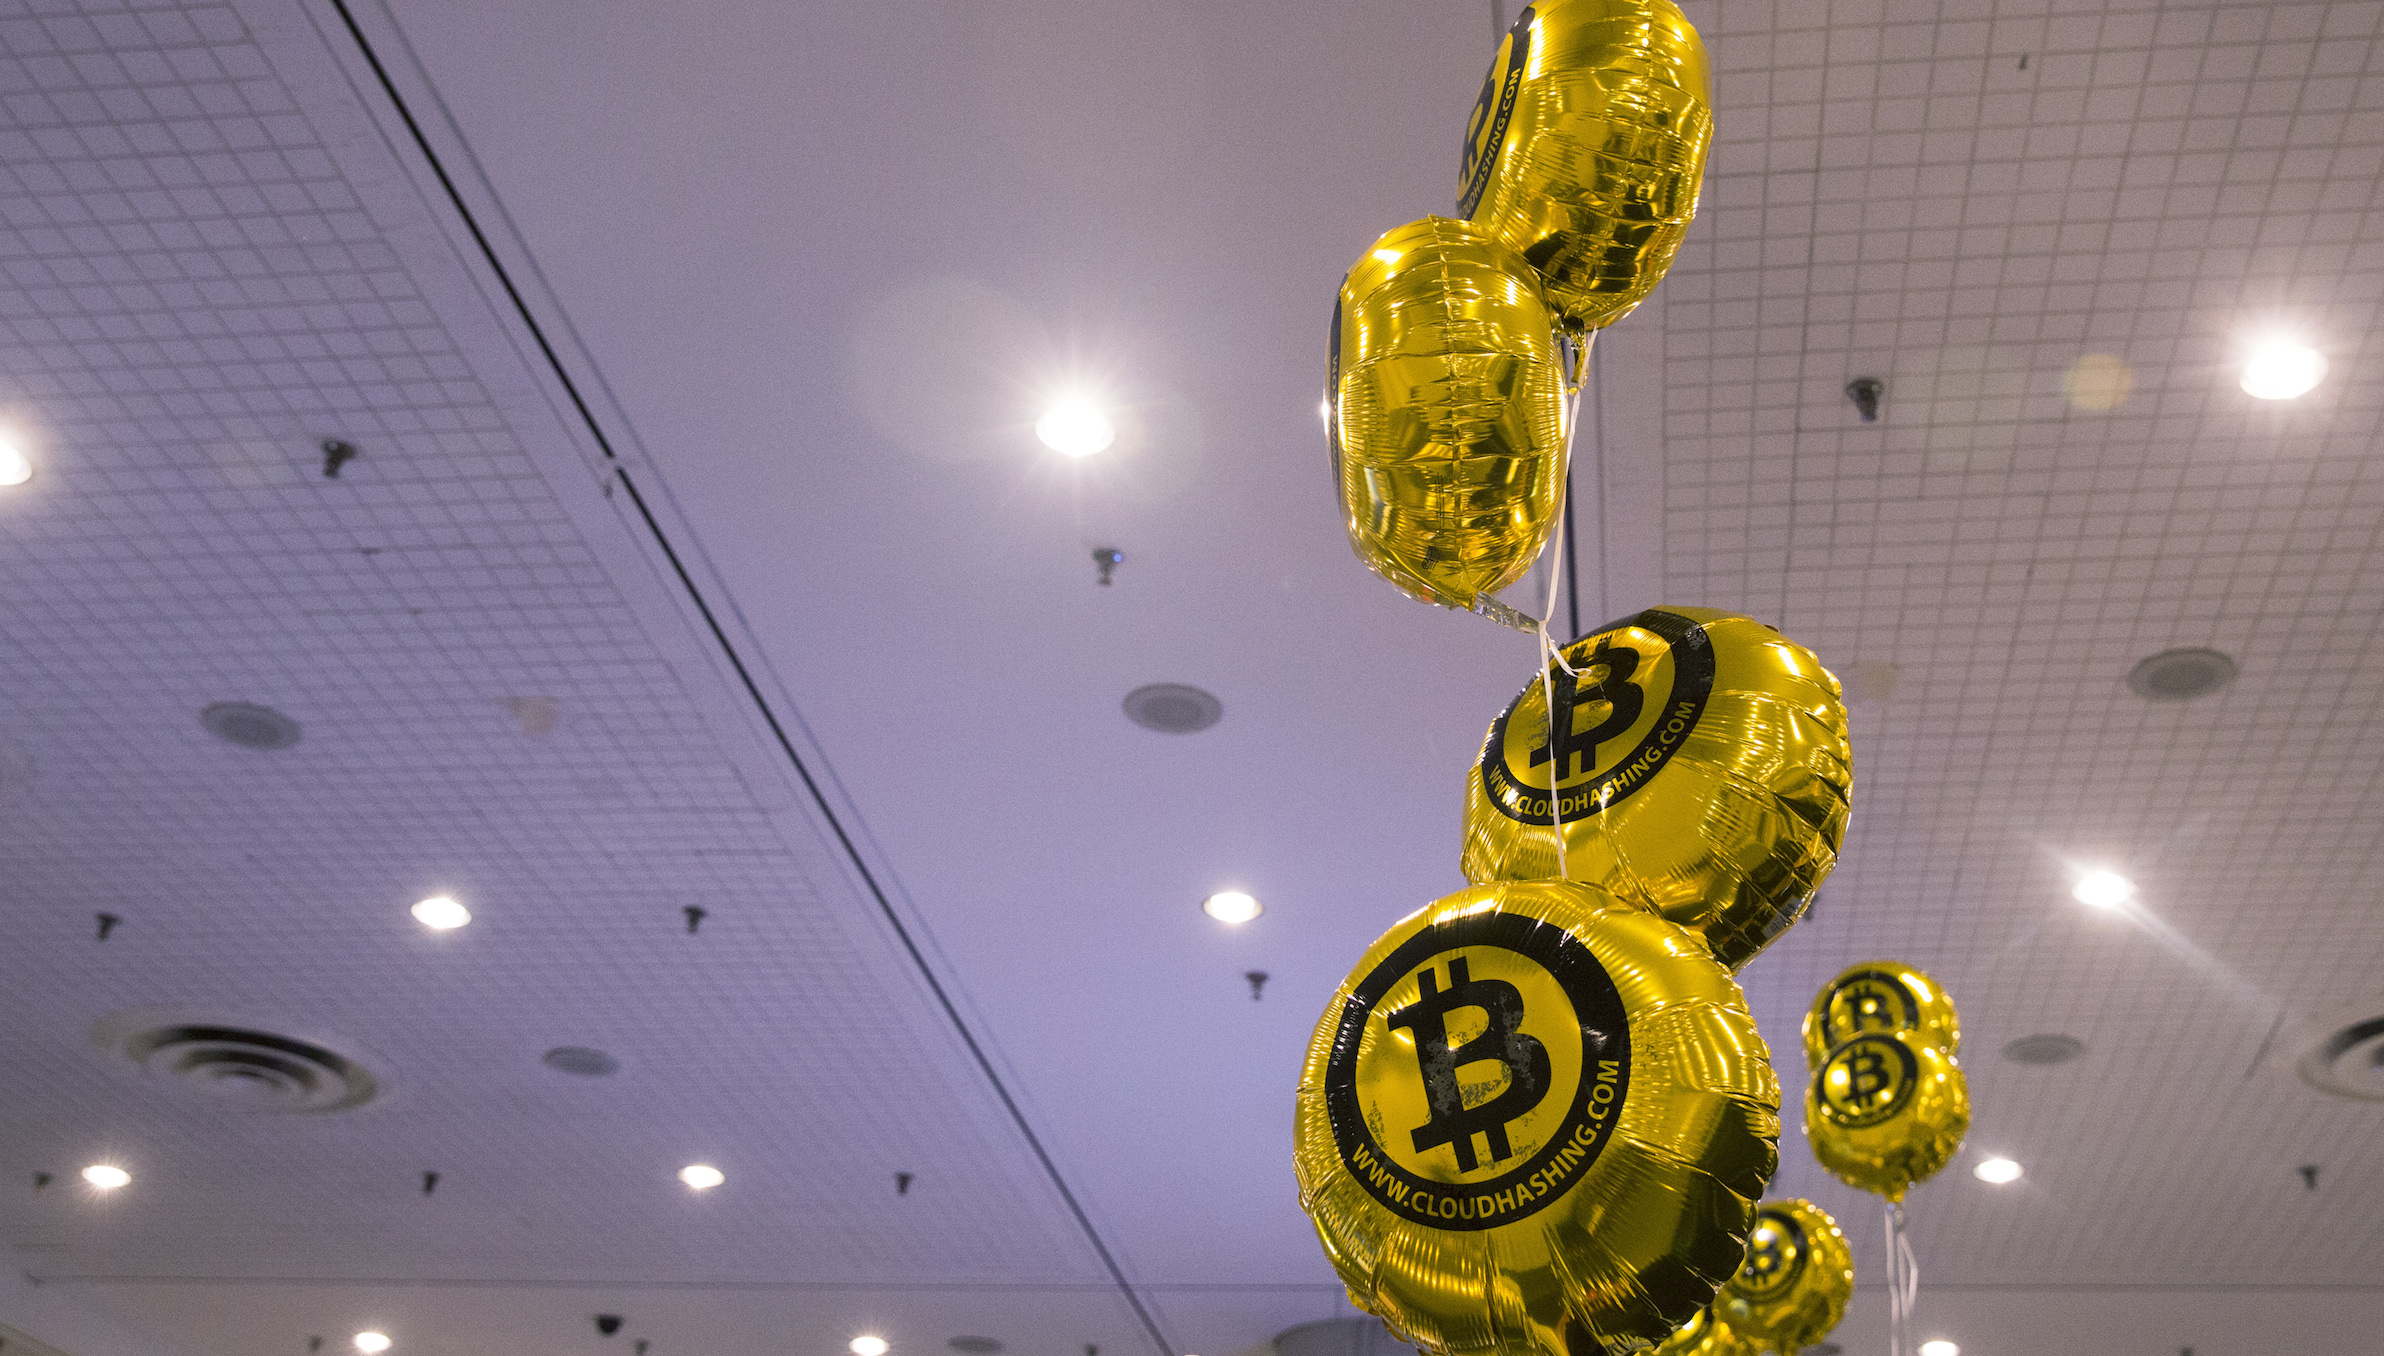 """Bitcoin themed balloons float in the air during the """"Inside Bitcoins: The Future of Virtual Currency Conference"""" in New York April 8, 2014. REUTERS/Lucas Jackson (UNITED STATES - Tags: BUSINESS SCIENCE TECHNOLOGY) - RTR3KH1Q"""